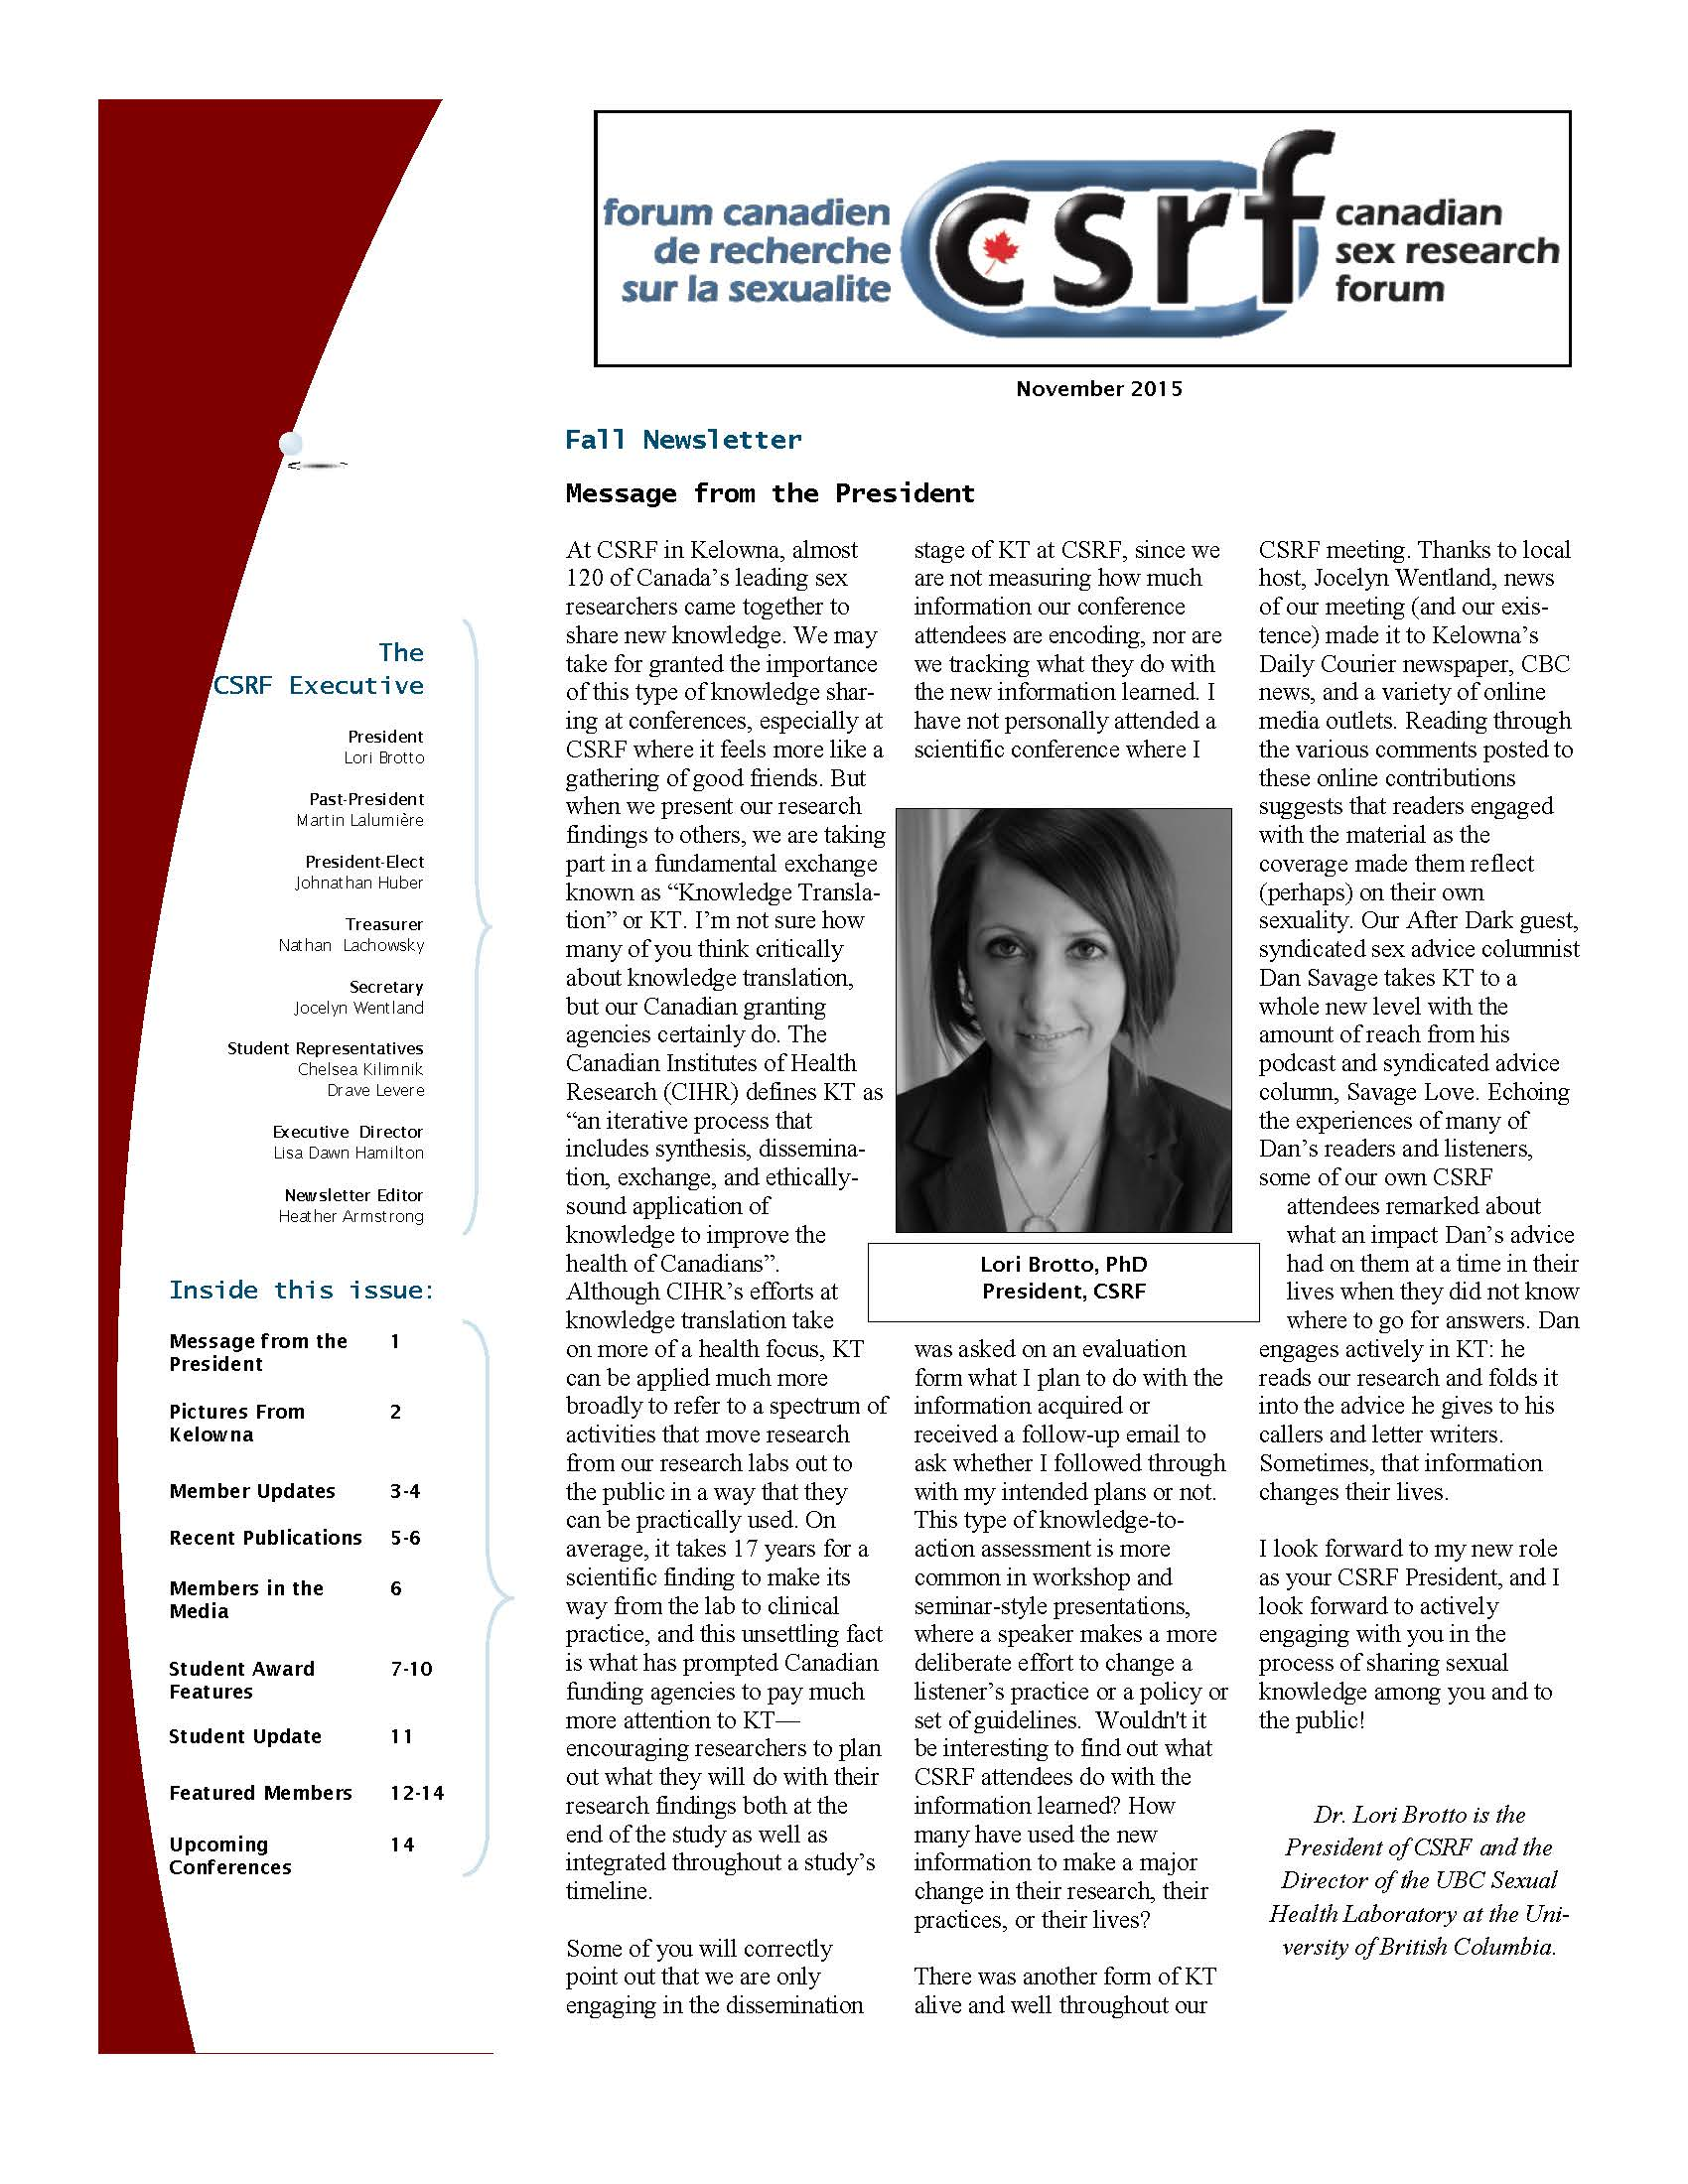 CSRF Fall Newsletter 2015_Page_01.jpg